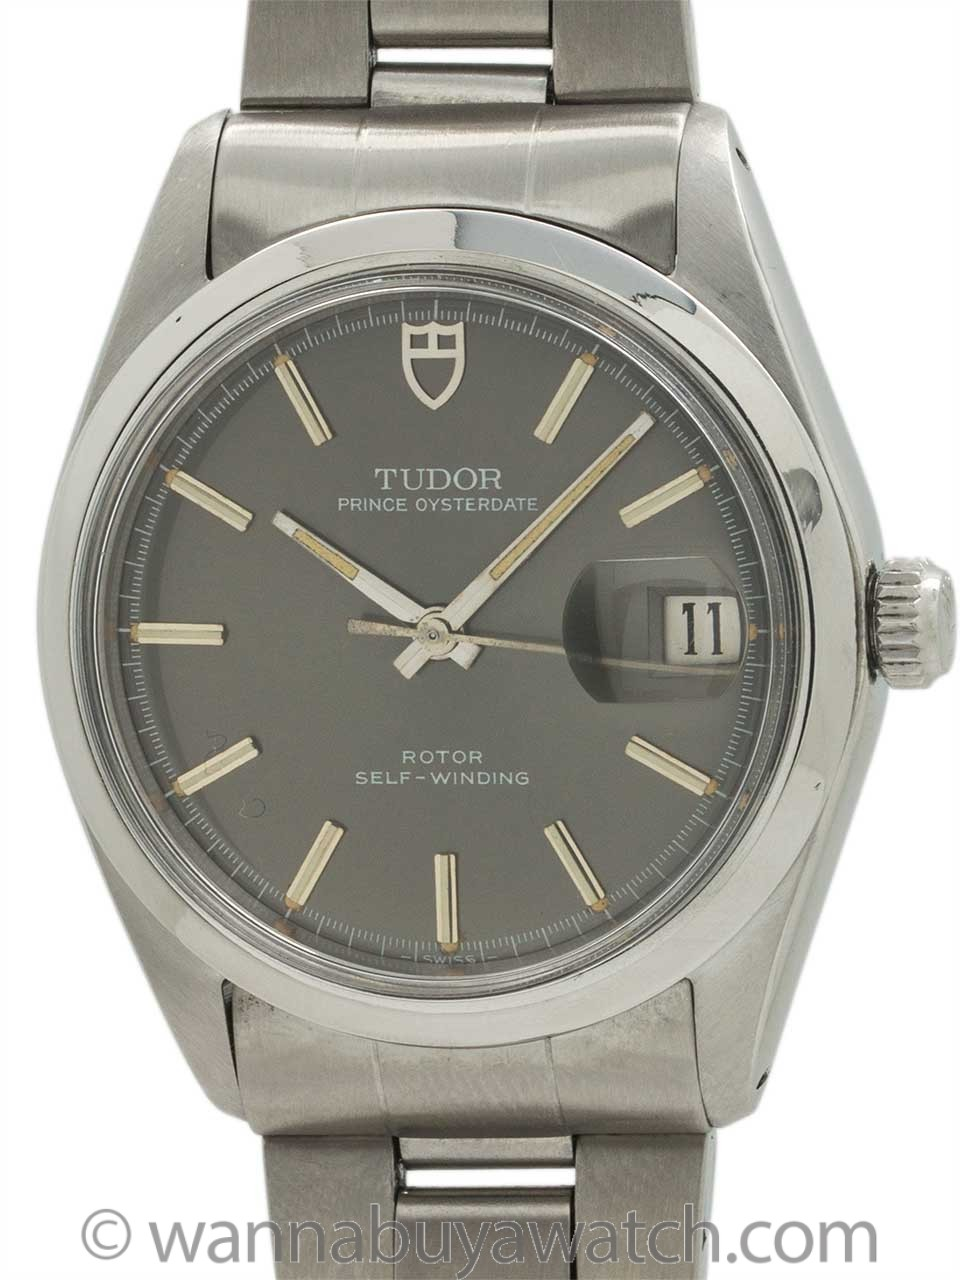 Tudor Prince Oyster Date Perpetual circa 1970's